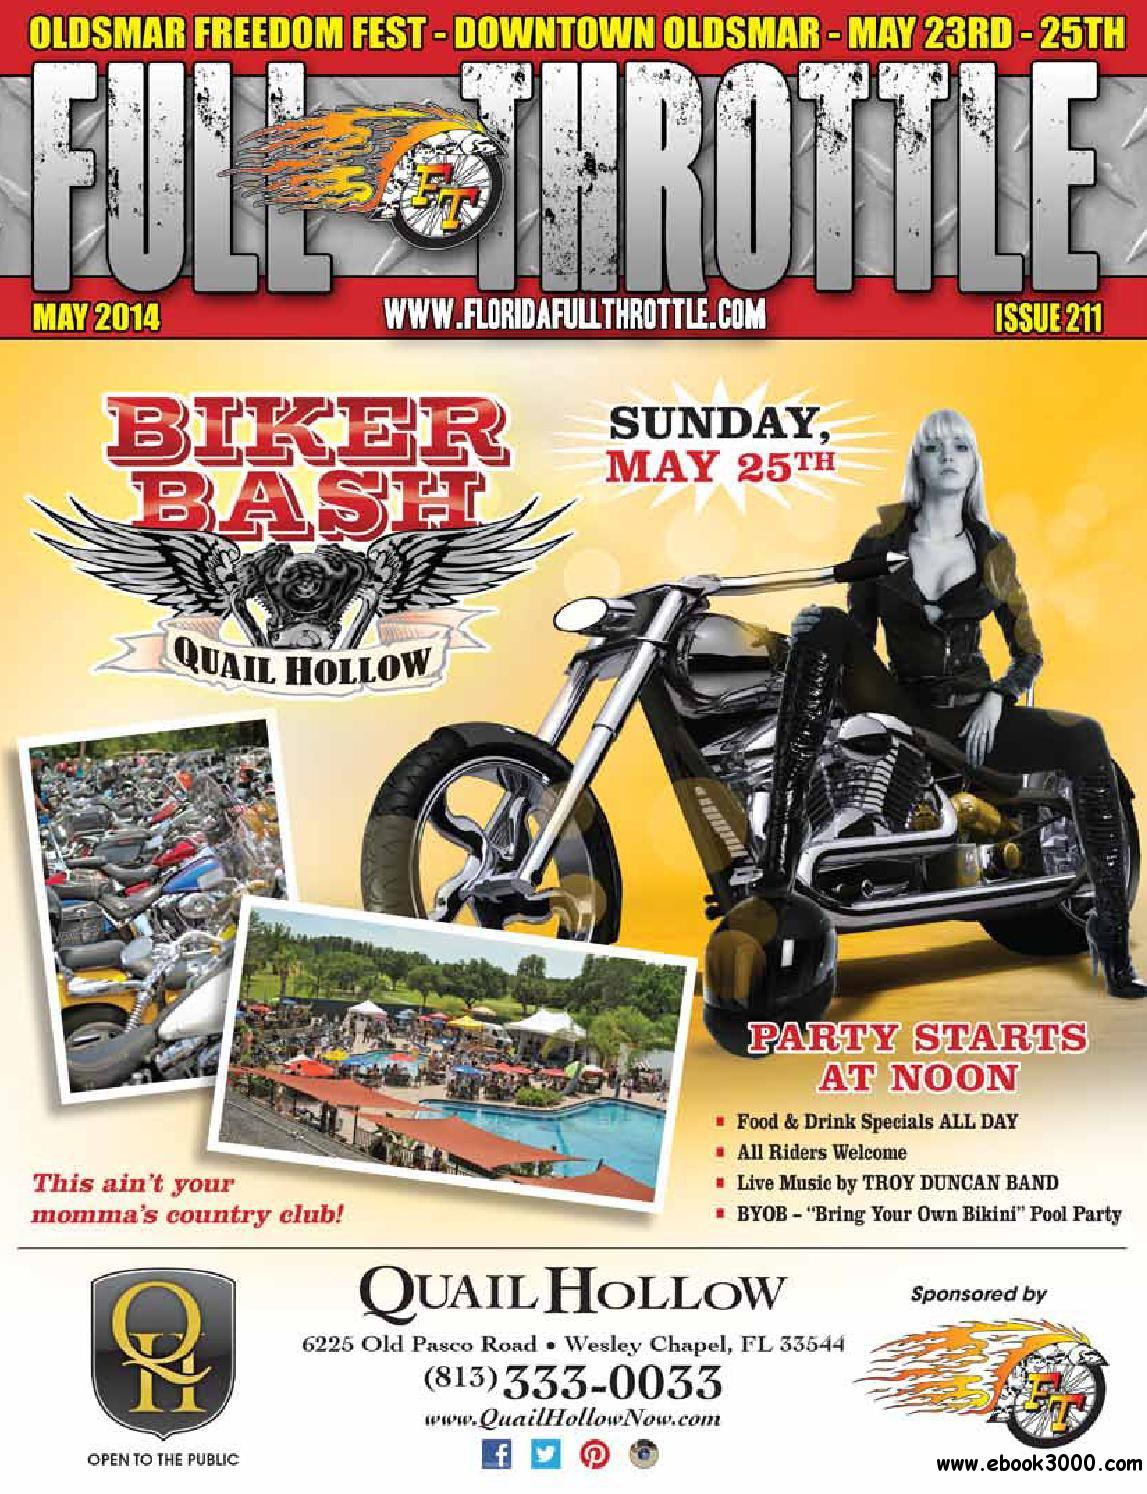 Full Throttle - May 2014 Issue 211 free download